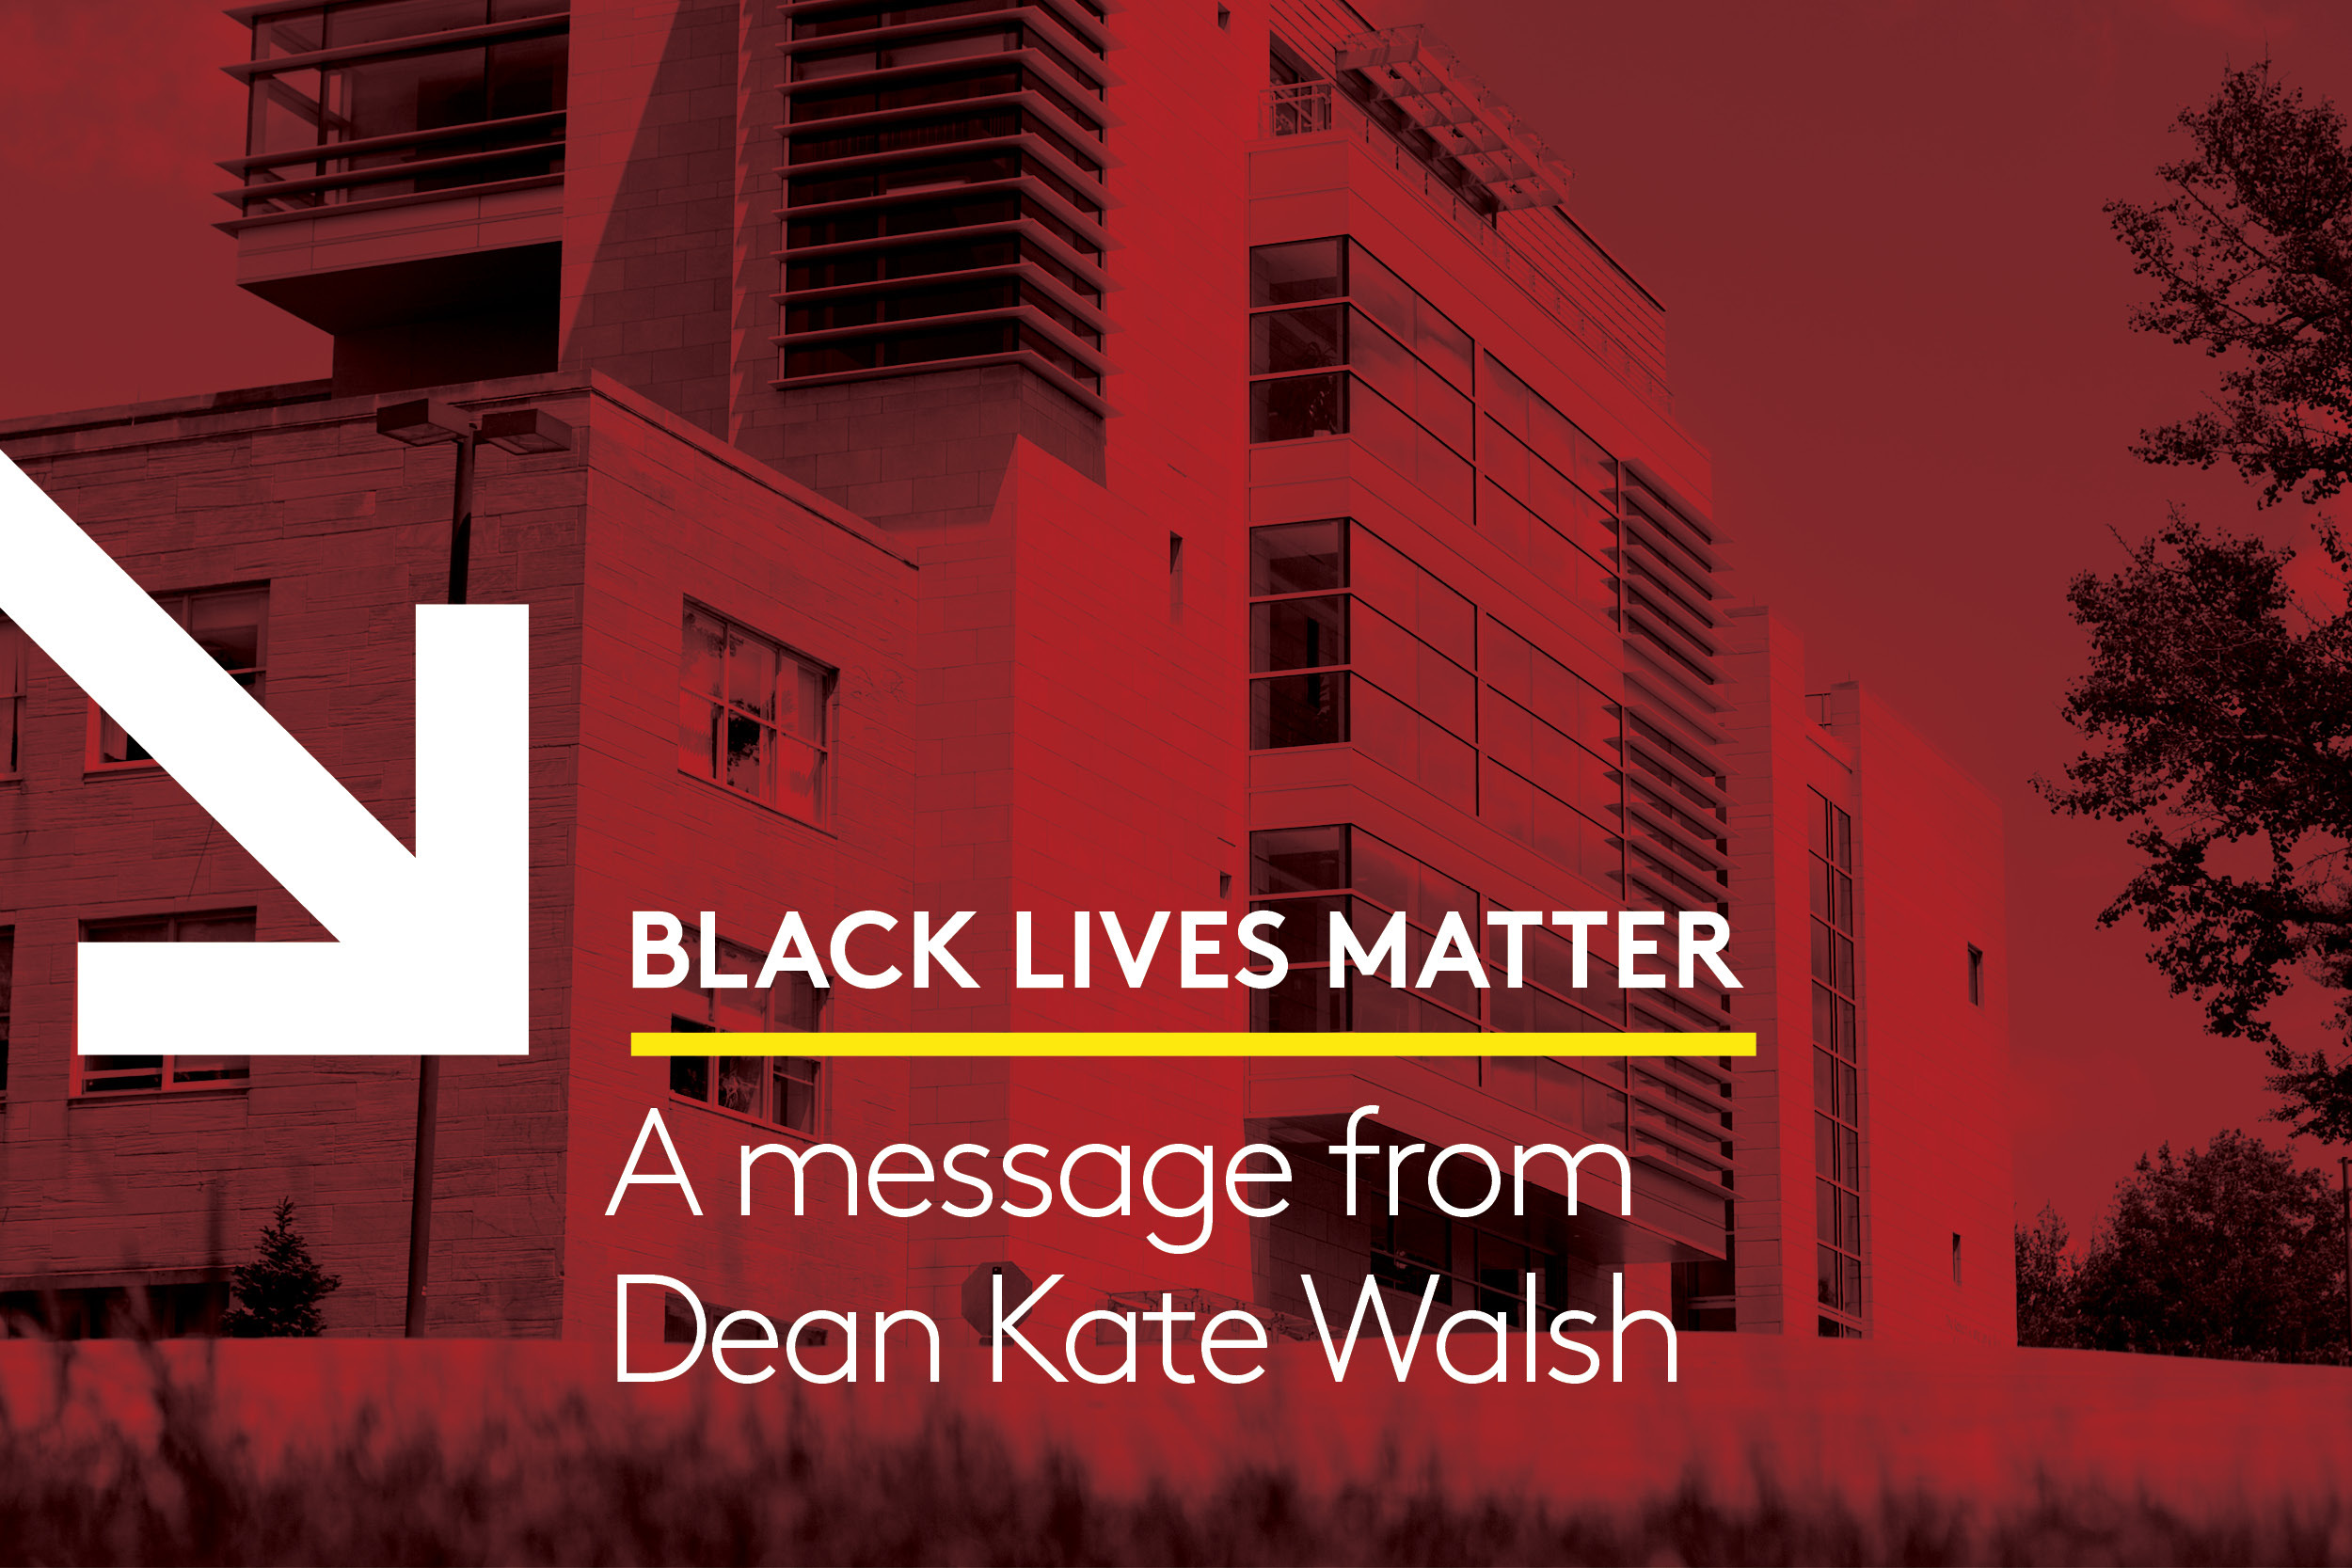 Black Lives Matter: A message from Dean Kate Walsh